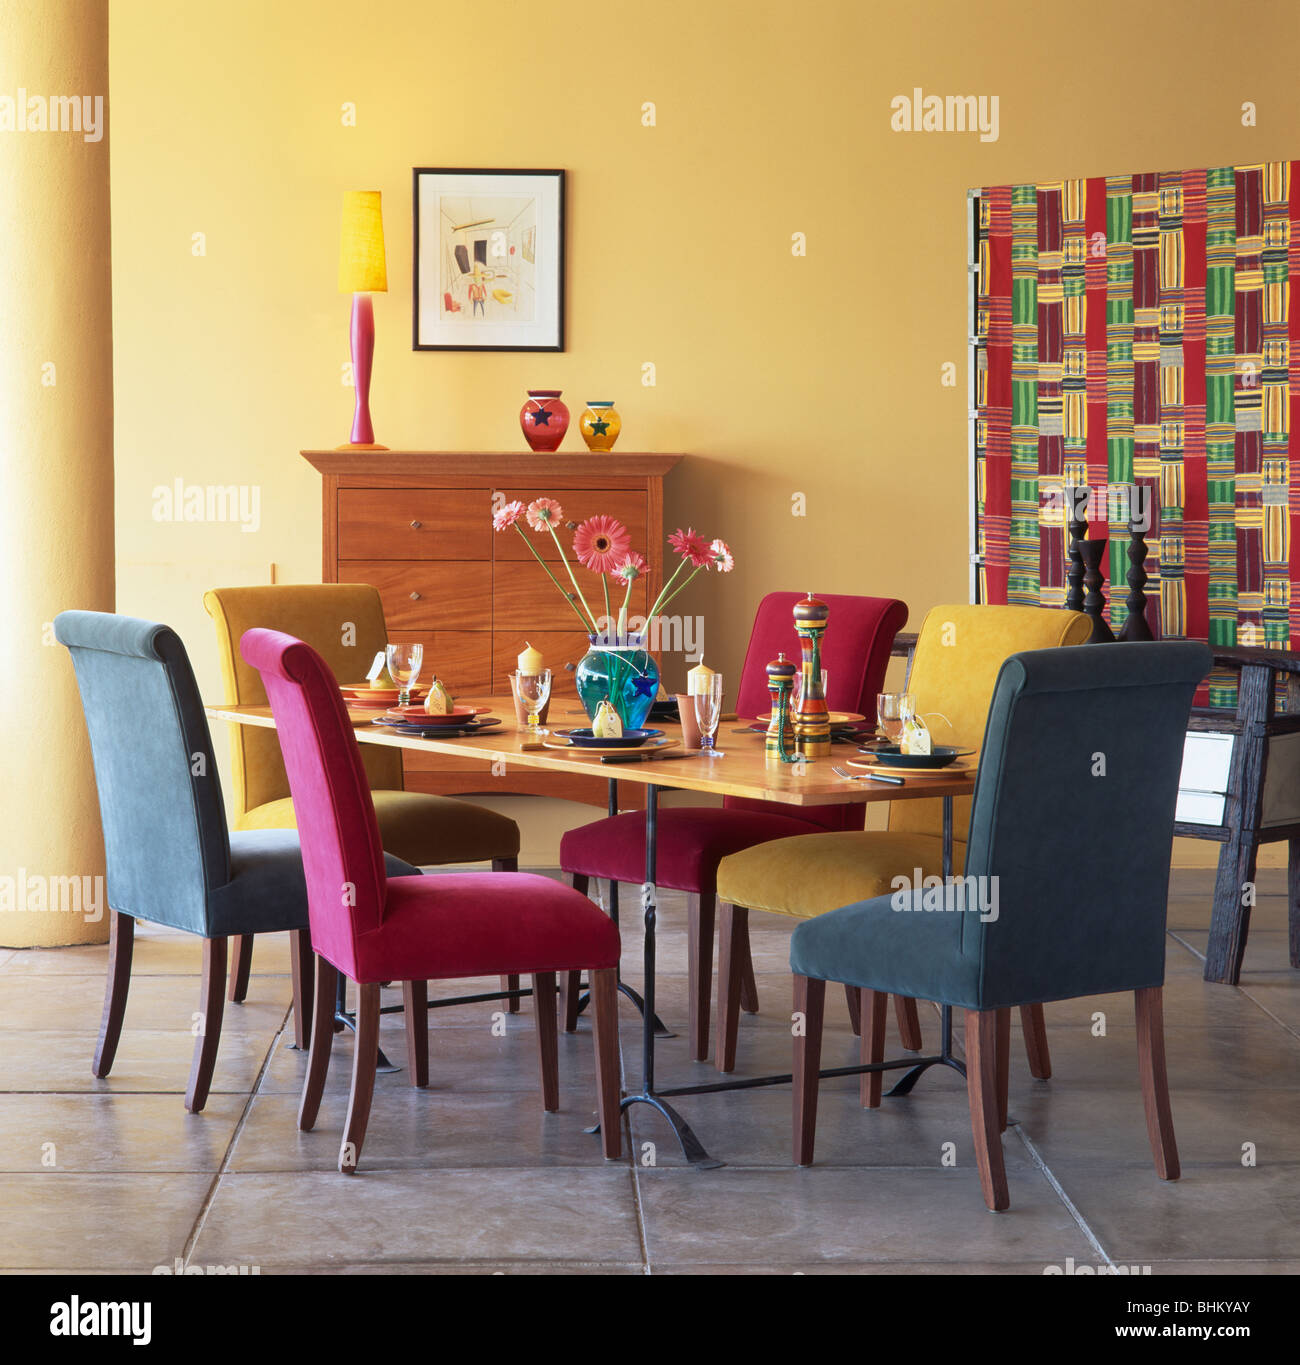 yellow upholstered dining chairs parsons chair cover pattern pink turquoise and blue velour at table in modern room with multi colored screen